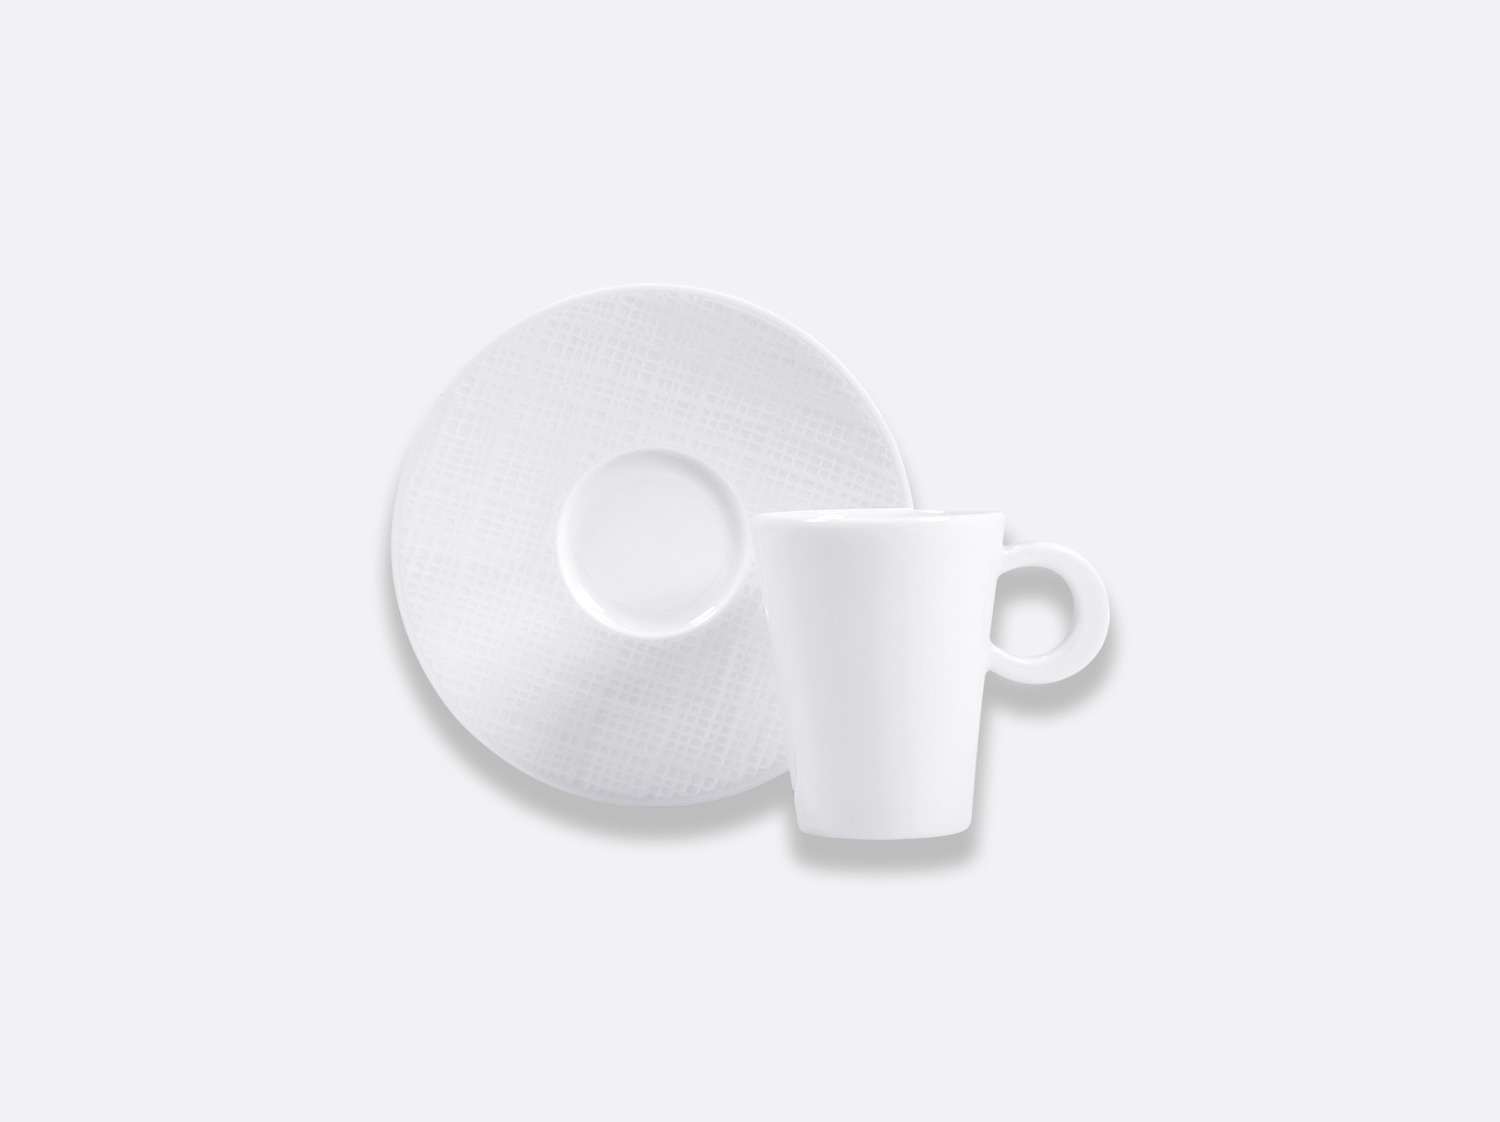 Tasse et soucoupe à café 6 cl en porcelaine de la collection Organza Bernardaud